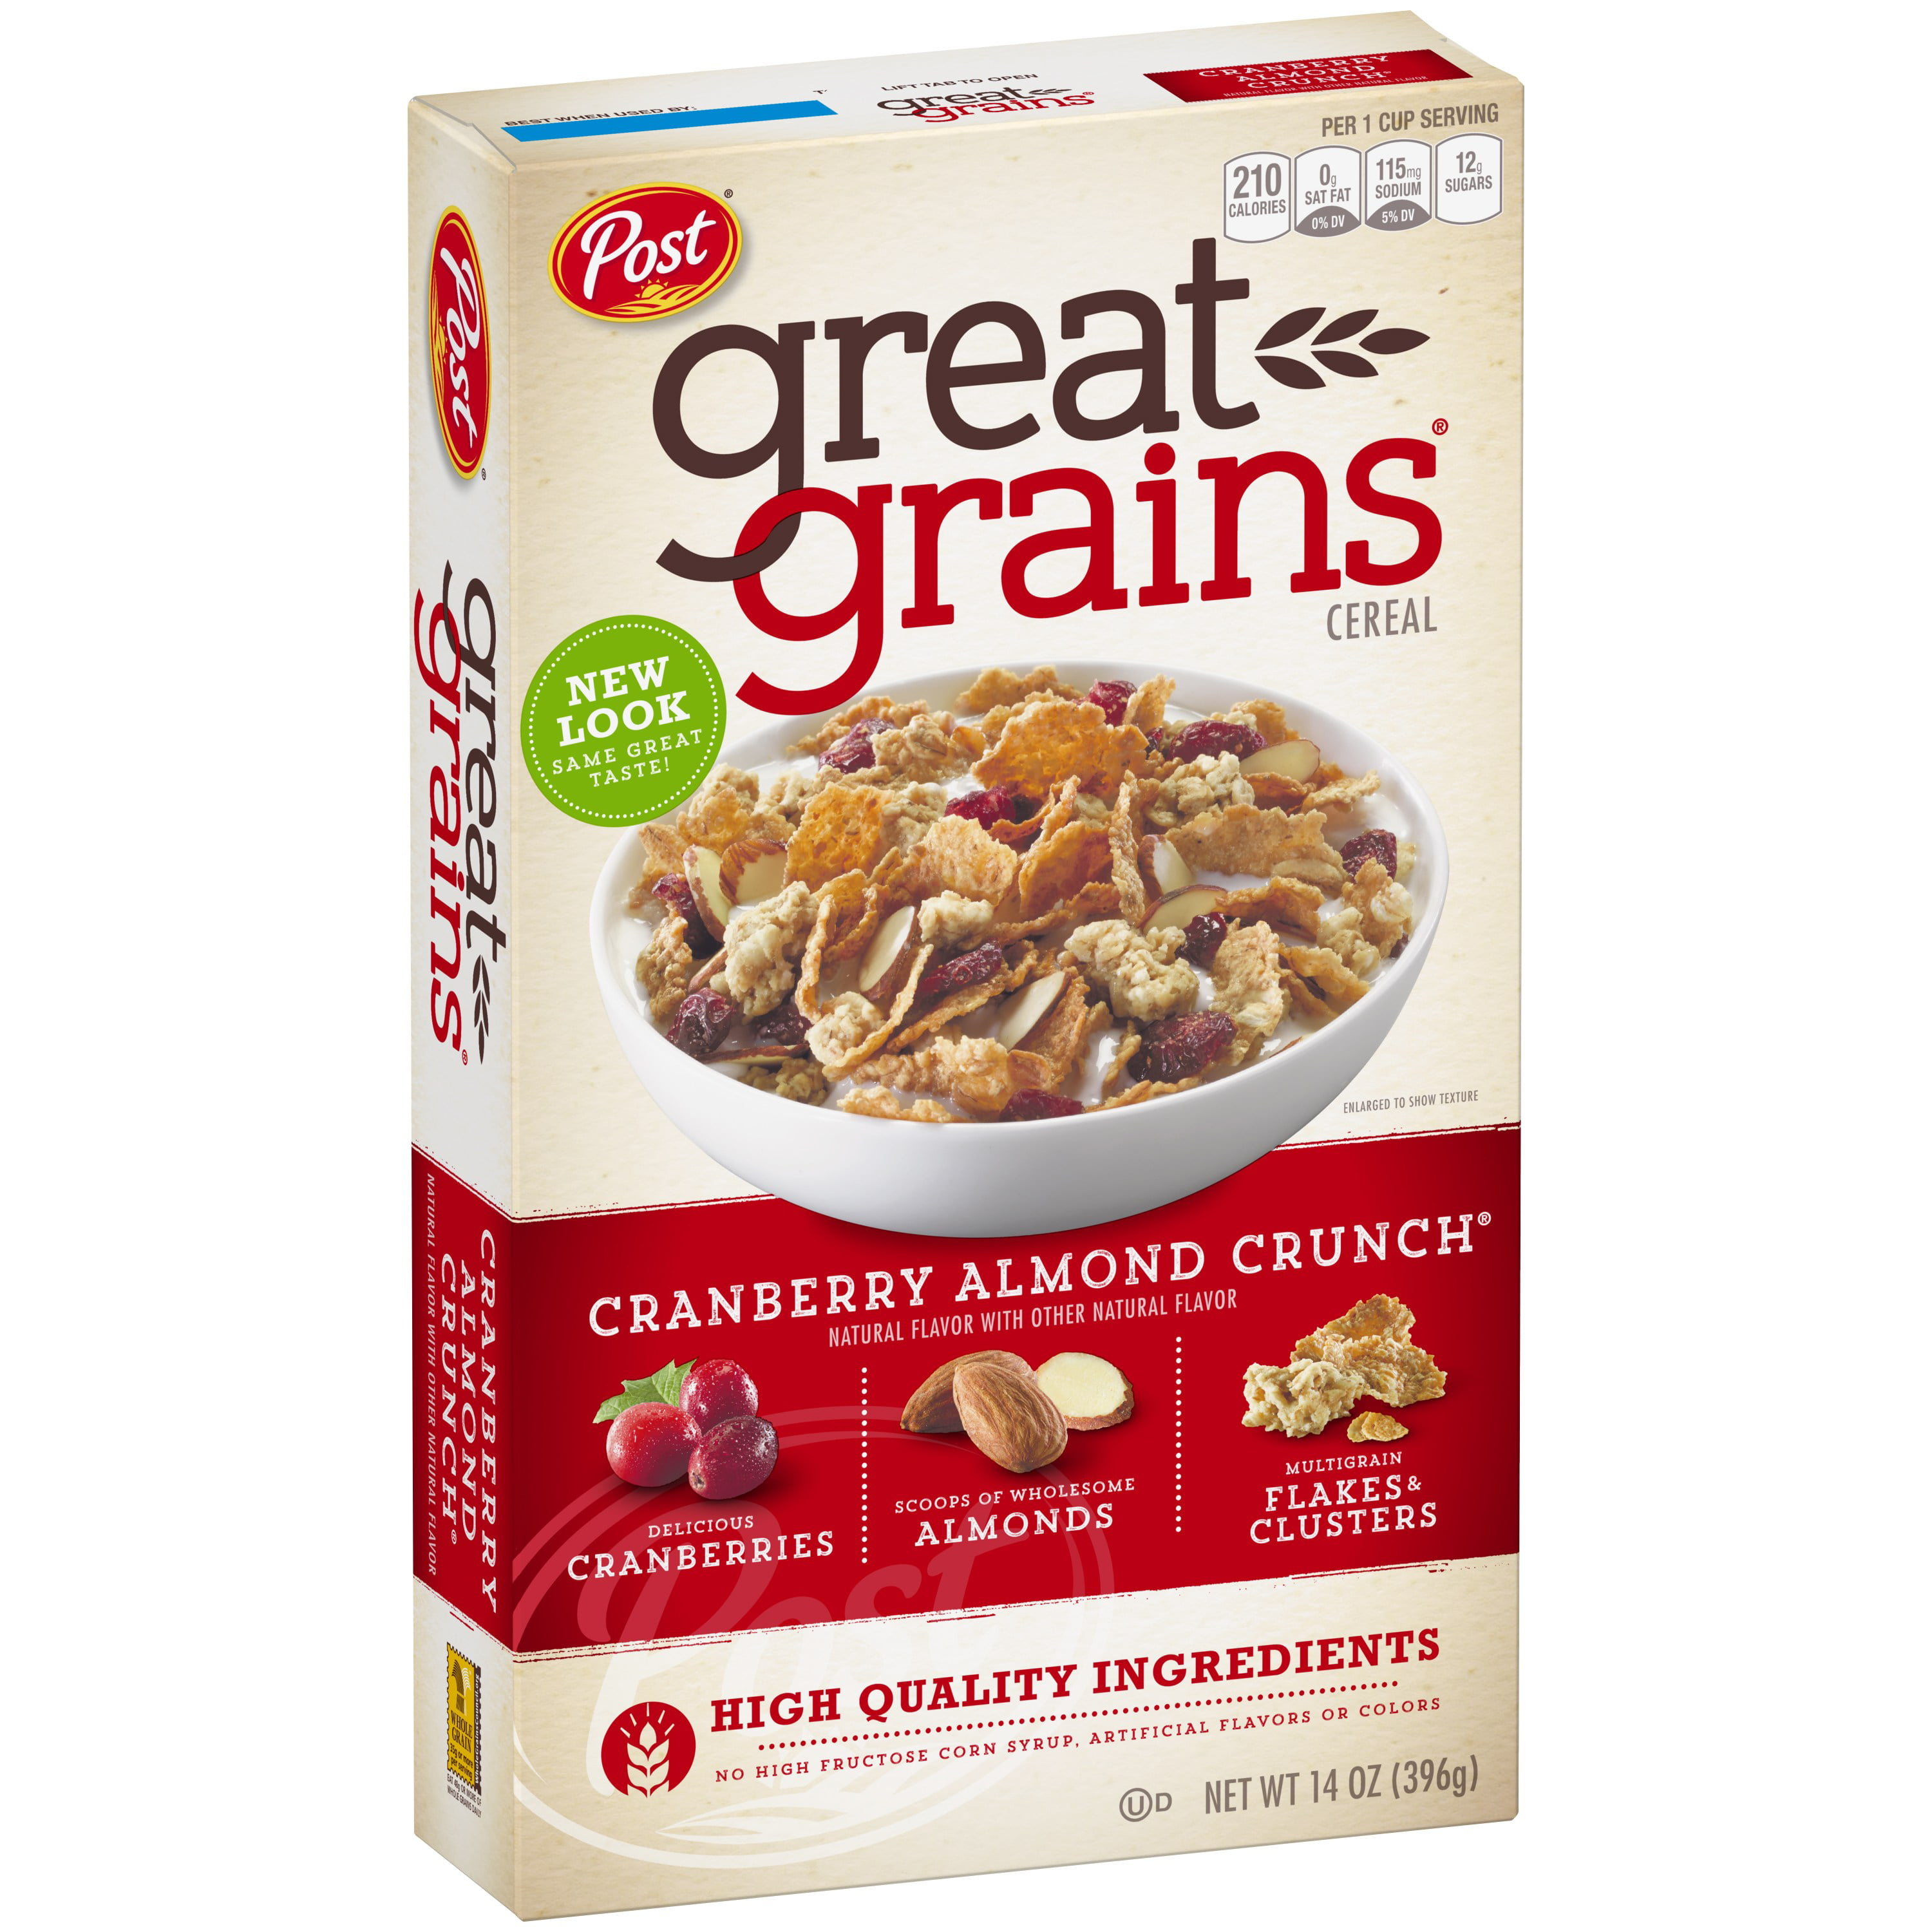 Post Great Grains Whole Grain Cereal, Cranberry Almond